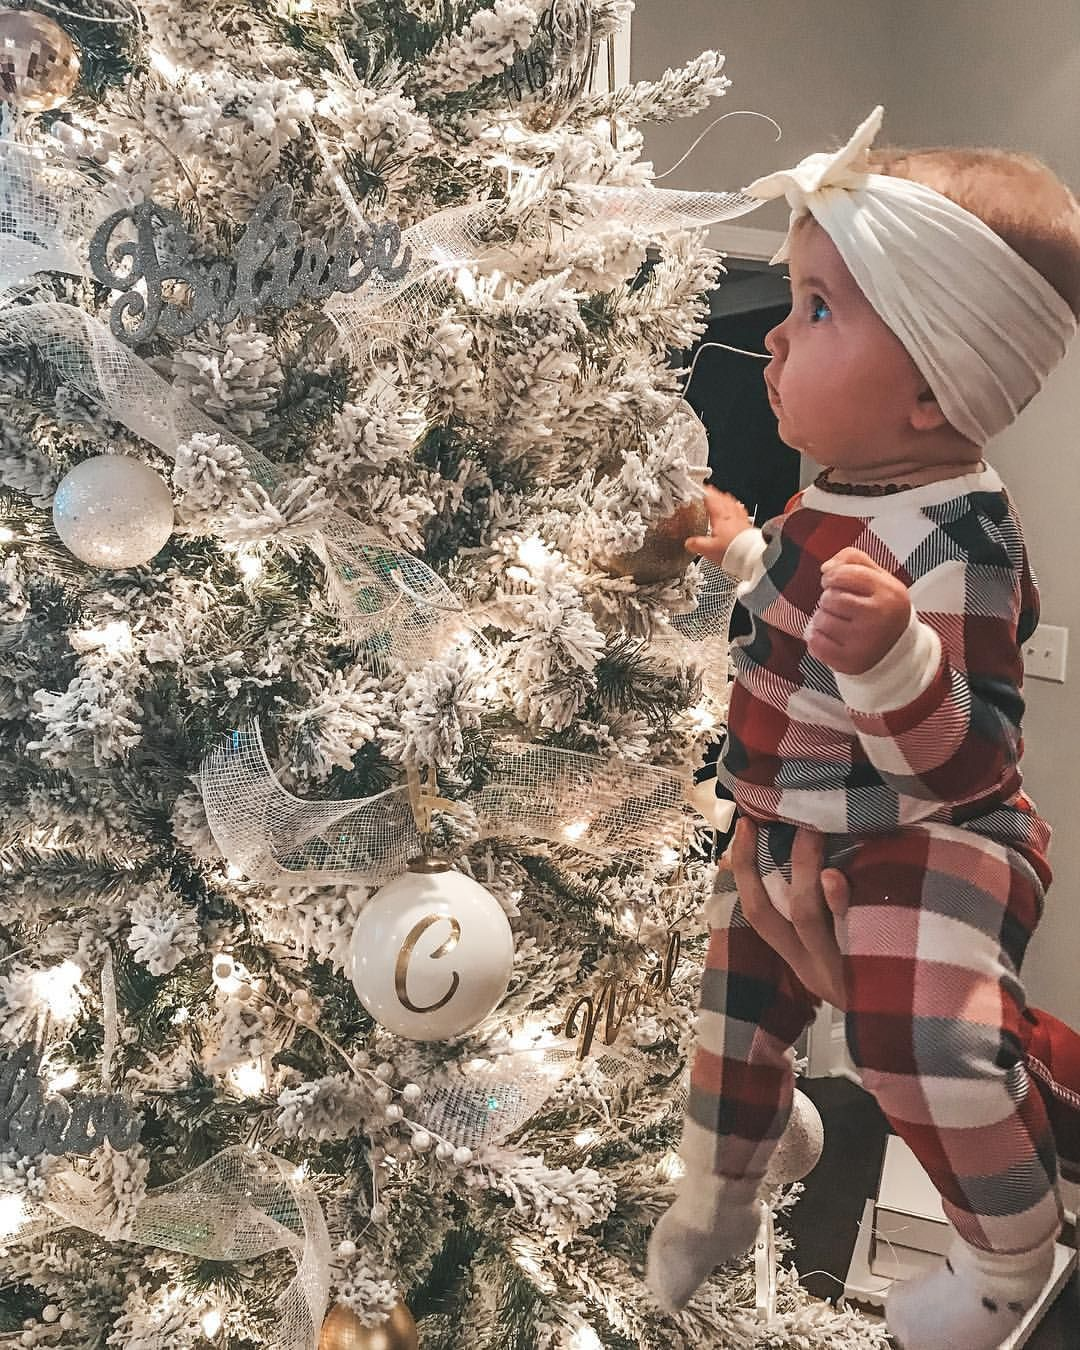 Baby Fashion 7 Months Old Baby Girl Fashion Baby Girl Outfits Baby Girl Christm Baby Girl Christmas Pictures Baby Girl Christmas Outfit Baby Girl Christmas